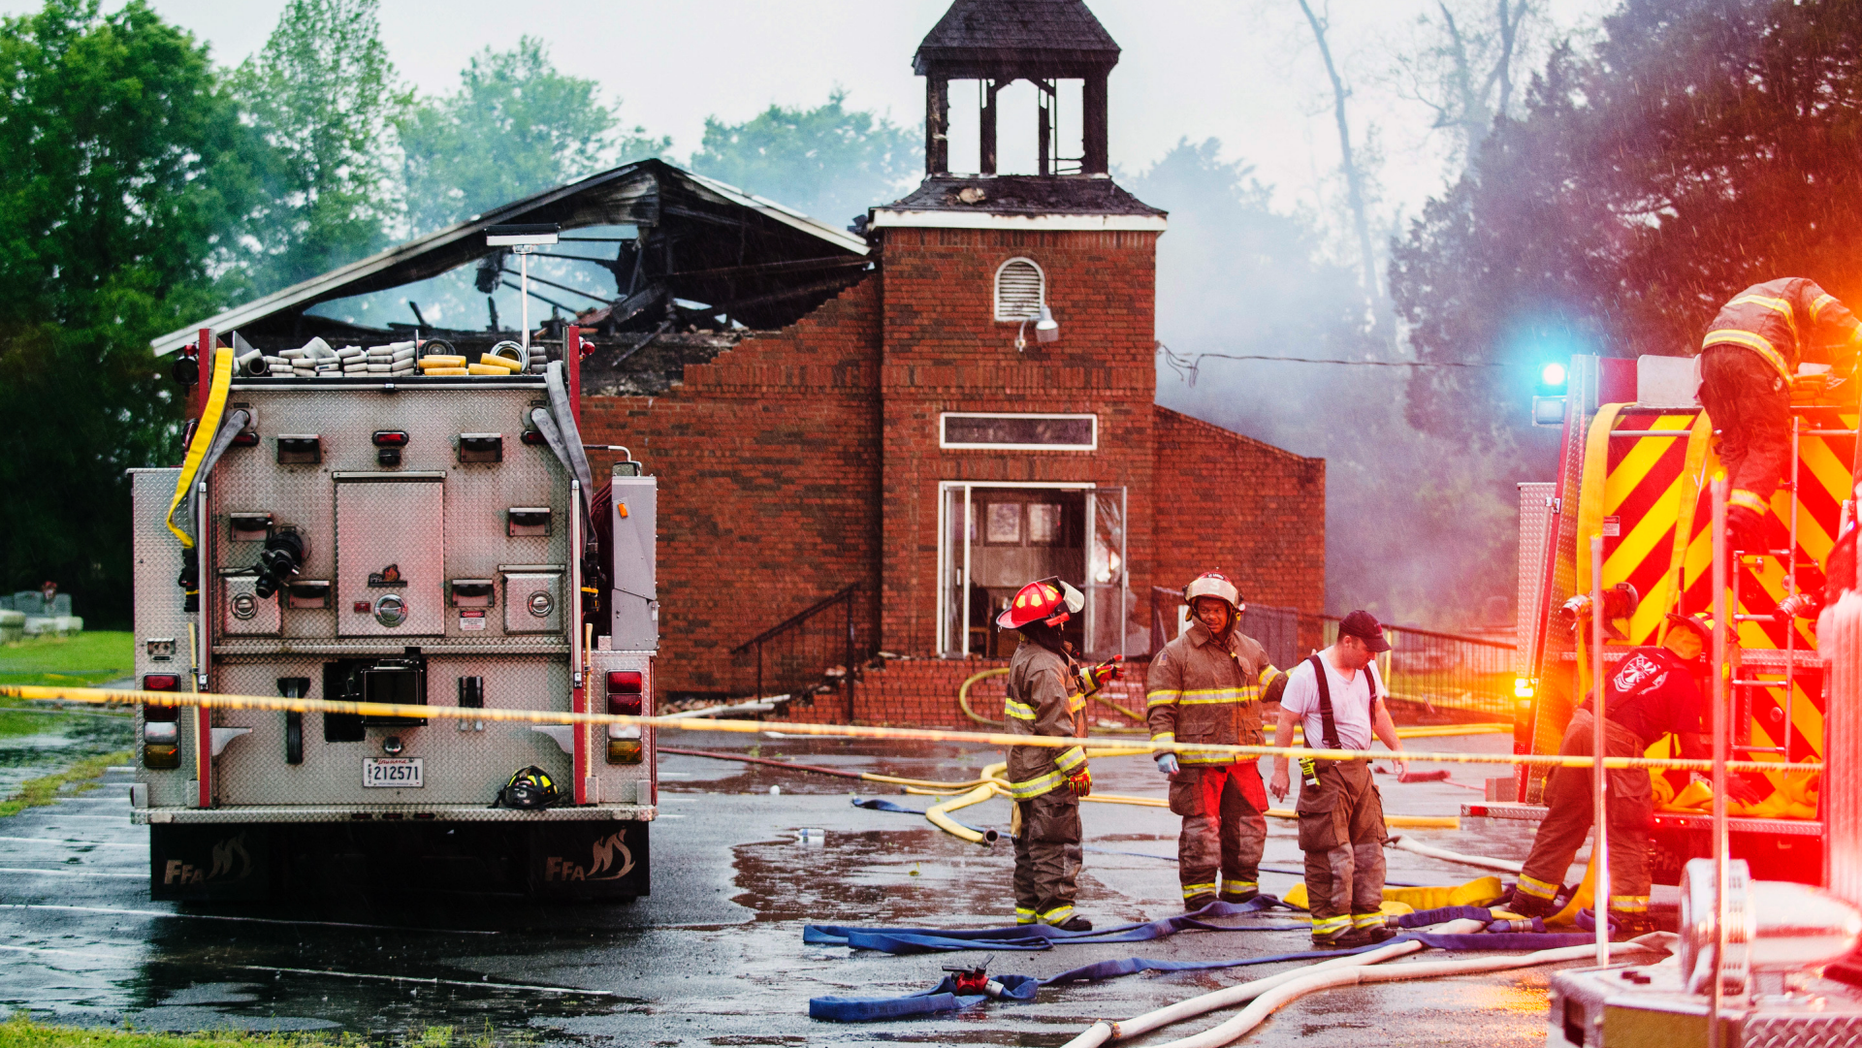 Over $1 million raised for three black Louisiana churches destroyed by arson